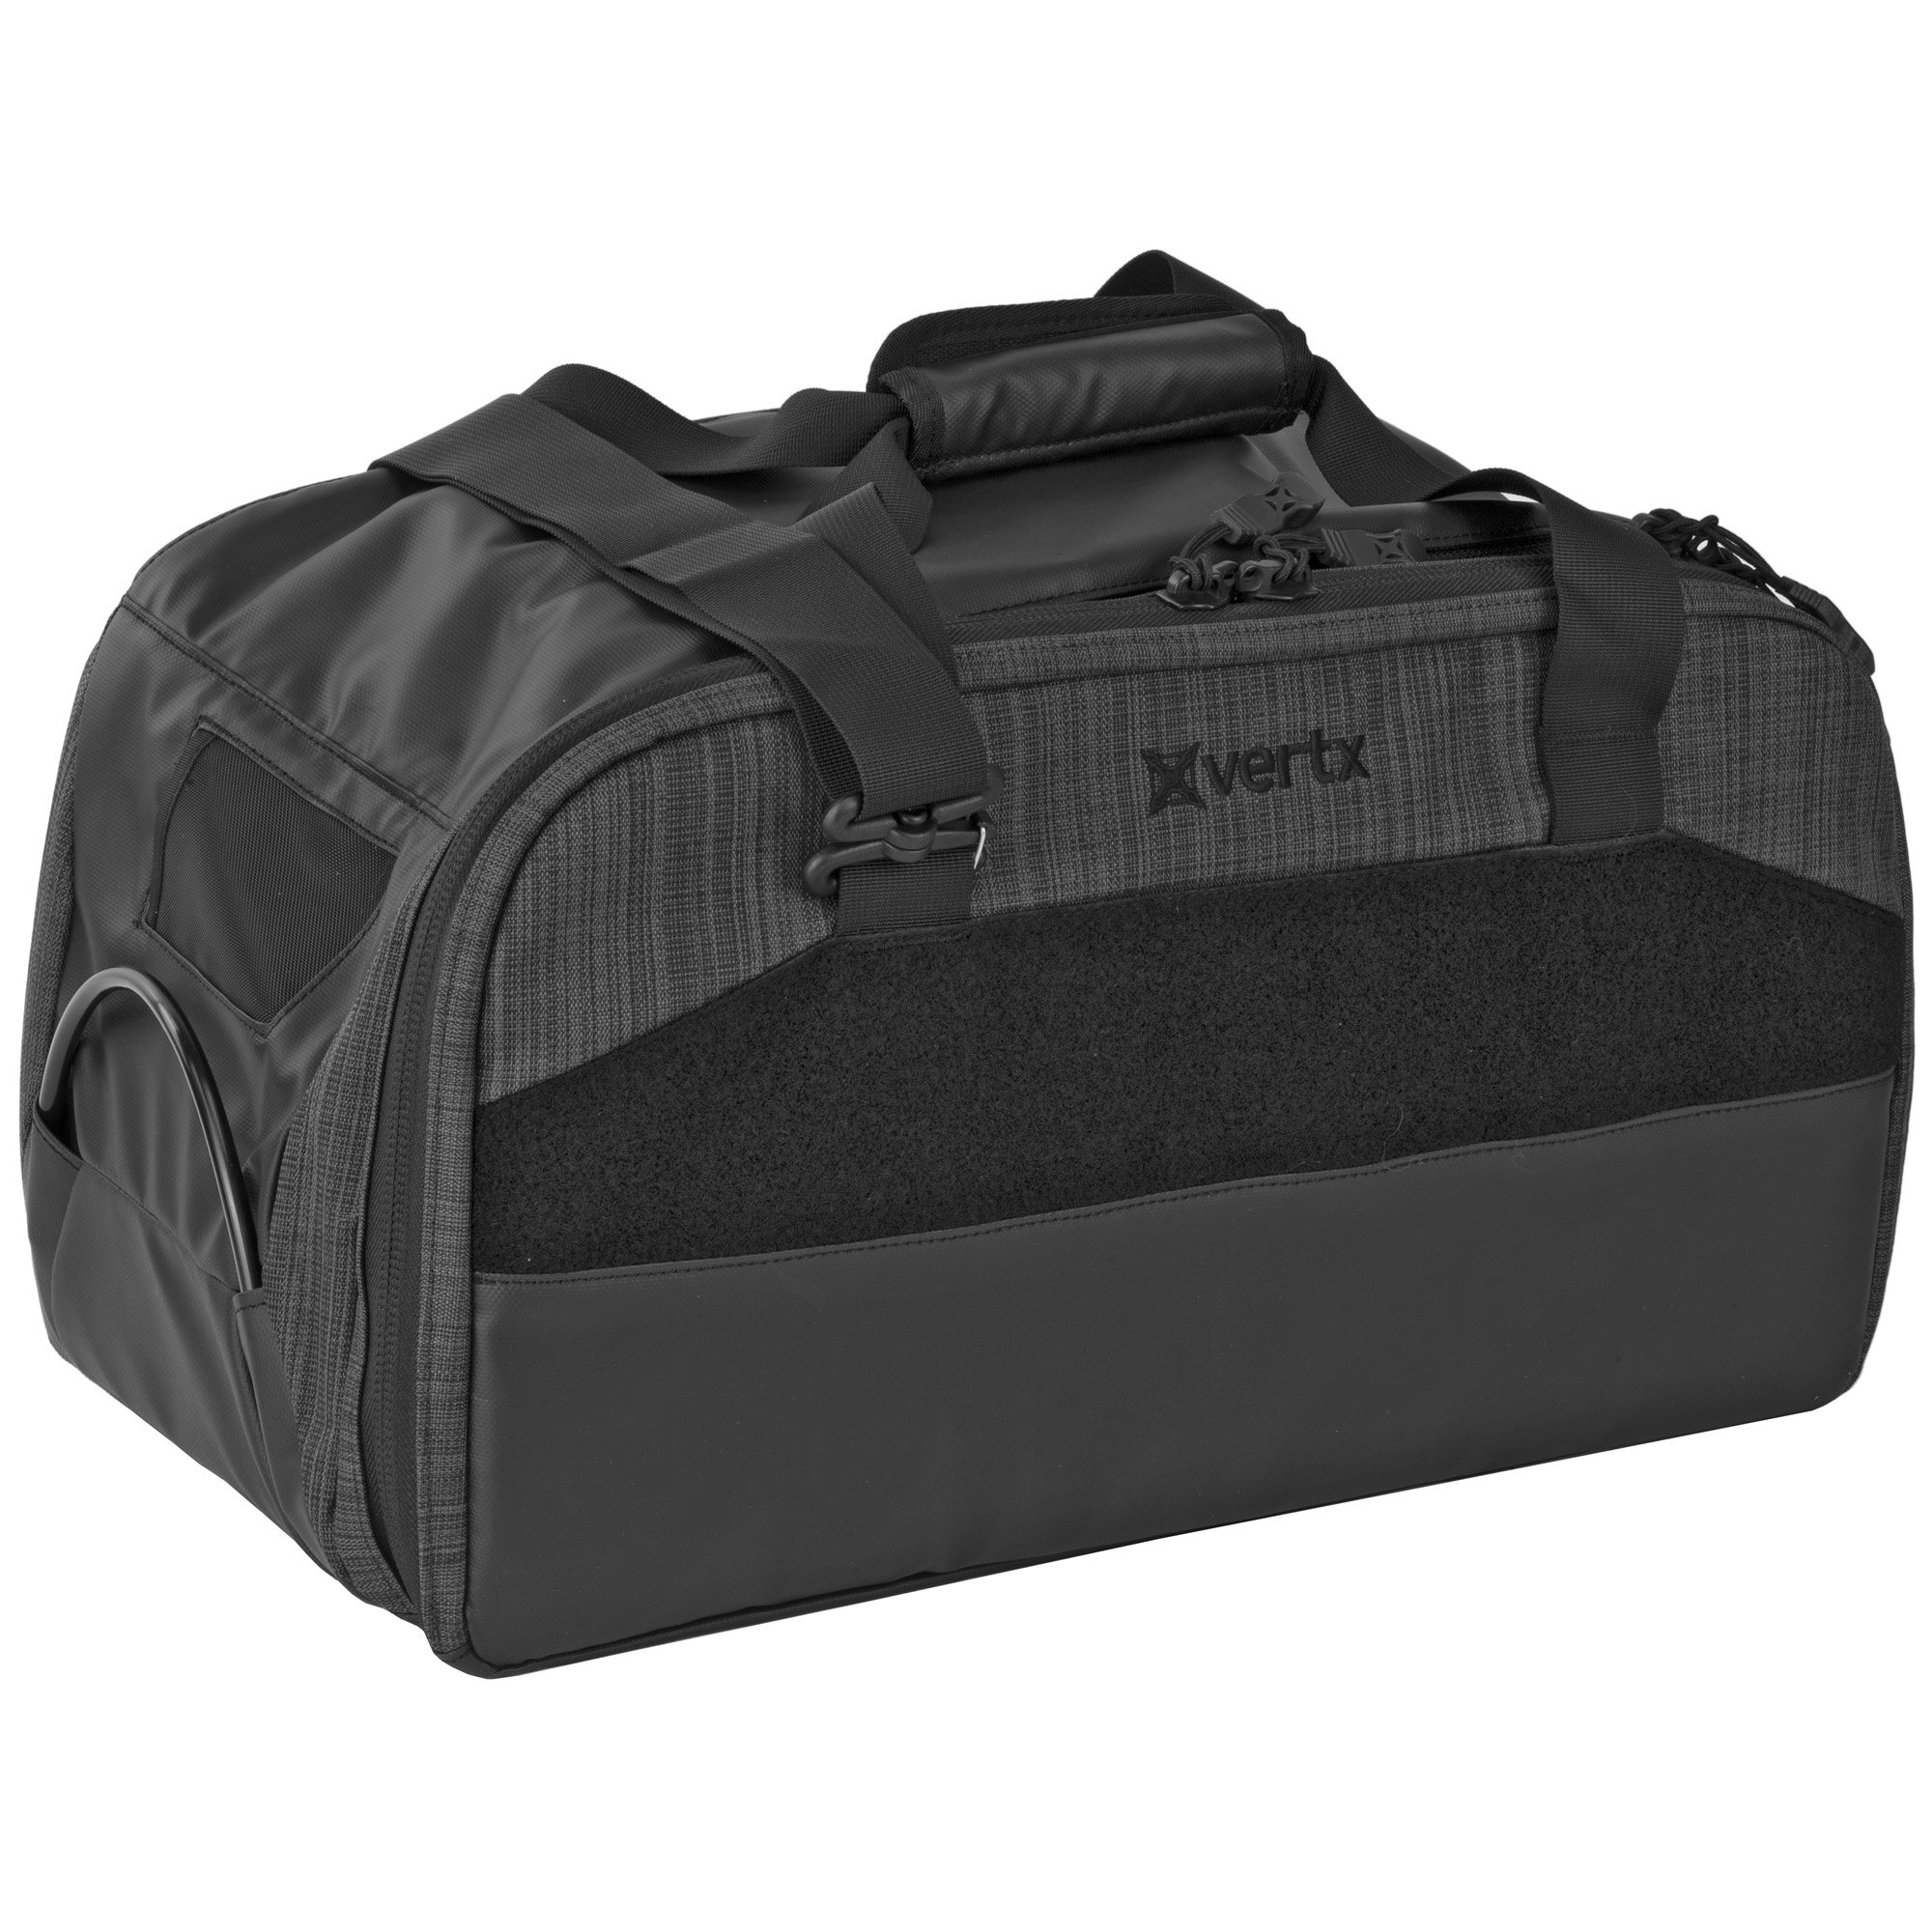 """Vertx Course of Fire (COF) Heavy Range Bags provide effortless organization with numerous spaces and pockets to keep your kit squared away. Robust materials and easy-wipe side and bottom surfaces ensure you'll get long-term service from these bags. The unique security lock-down cable system runs the length of the bags"""" giving you multiple options for securing it to your vehicle"""" reducing chances of a quick smash-and-grab. Internal hard dividers and padded panels provide structure and protection for weapons"""" tools and other gear"""" while large VELCRO Brand loop surfaces give you the flexibility to position accessories and organizing pouches exactly where you want them. Removable ammo caddies and a six-pack mag carrier give you the ability to take just what you need to the line"""" and the adjustable/removable padded shoulder strap is especially convenient when you're loaded for a serious day of plinking. Don't settle for aggravation and disorganization"""" set your sights on a Vertx COF Range Bag."""